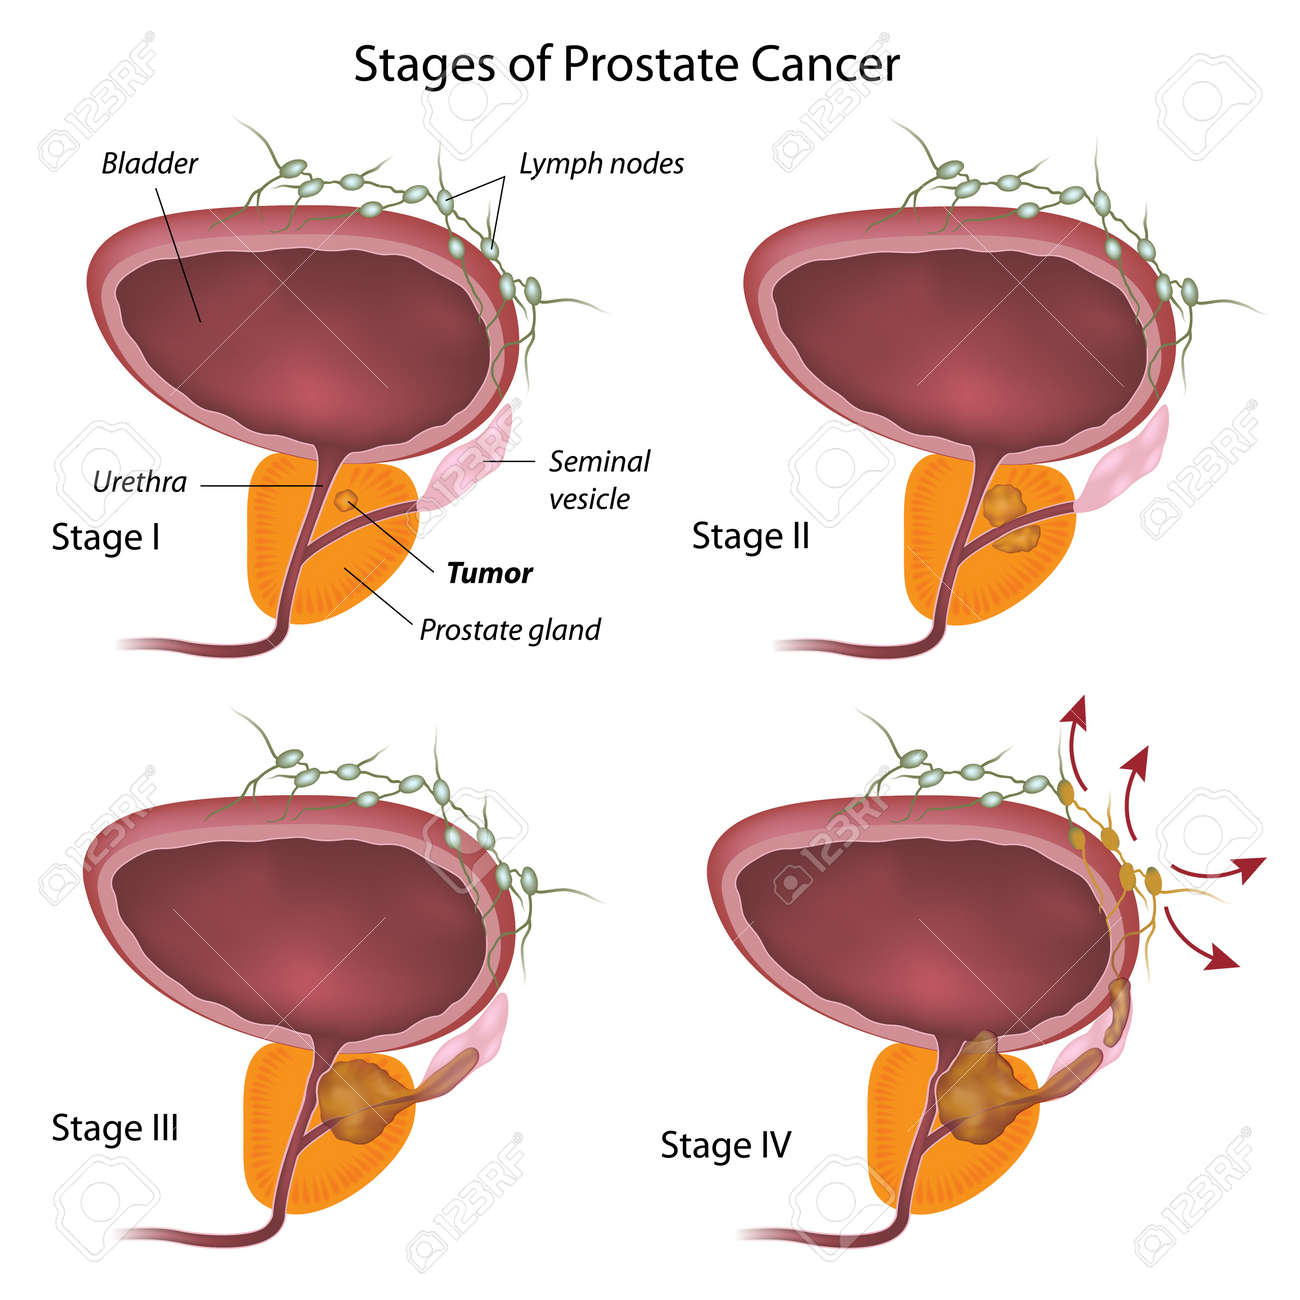 Stages of prostate cancer - 16189453